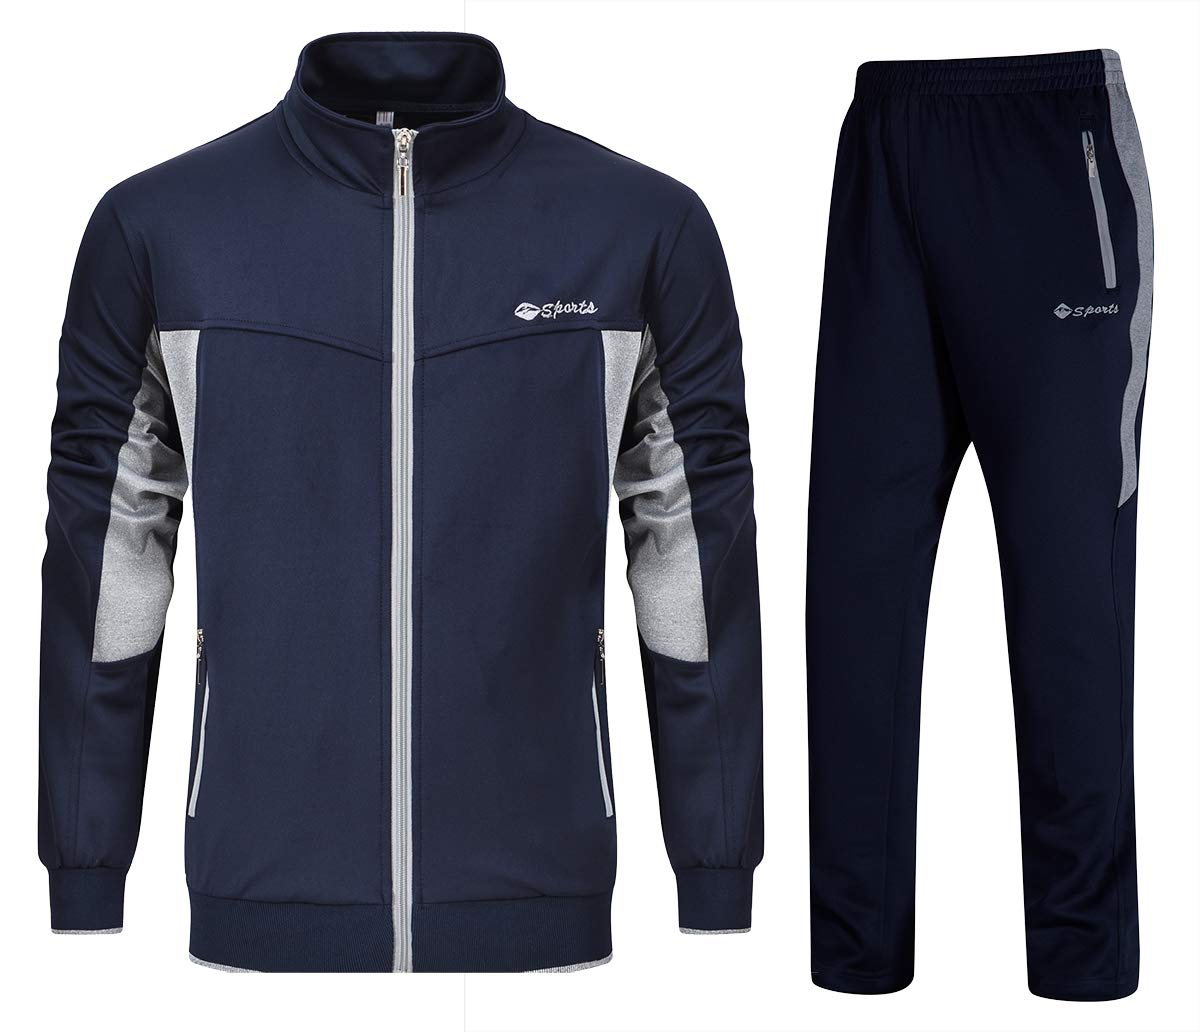 YSENTO Mens Tracksuits Gym Jogging Suits Sports Casual Sweatsuits Full Zip Navy Grey XL by YSENTO